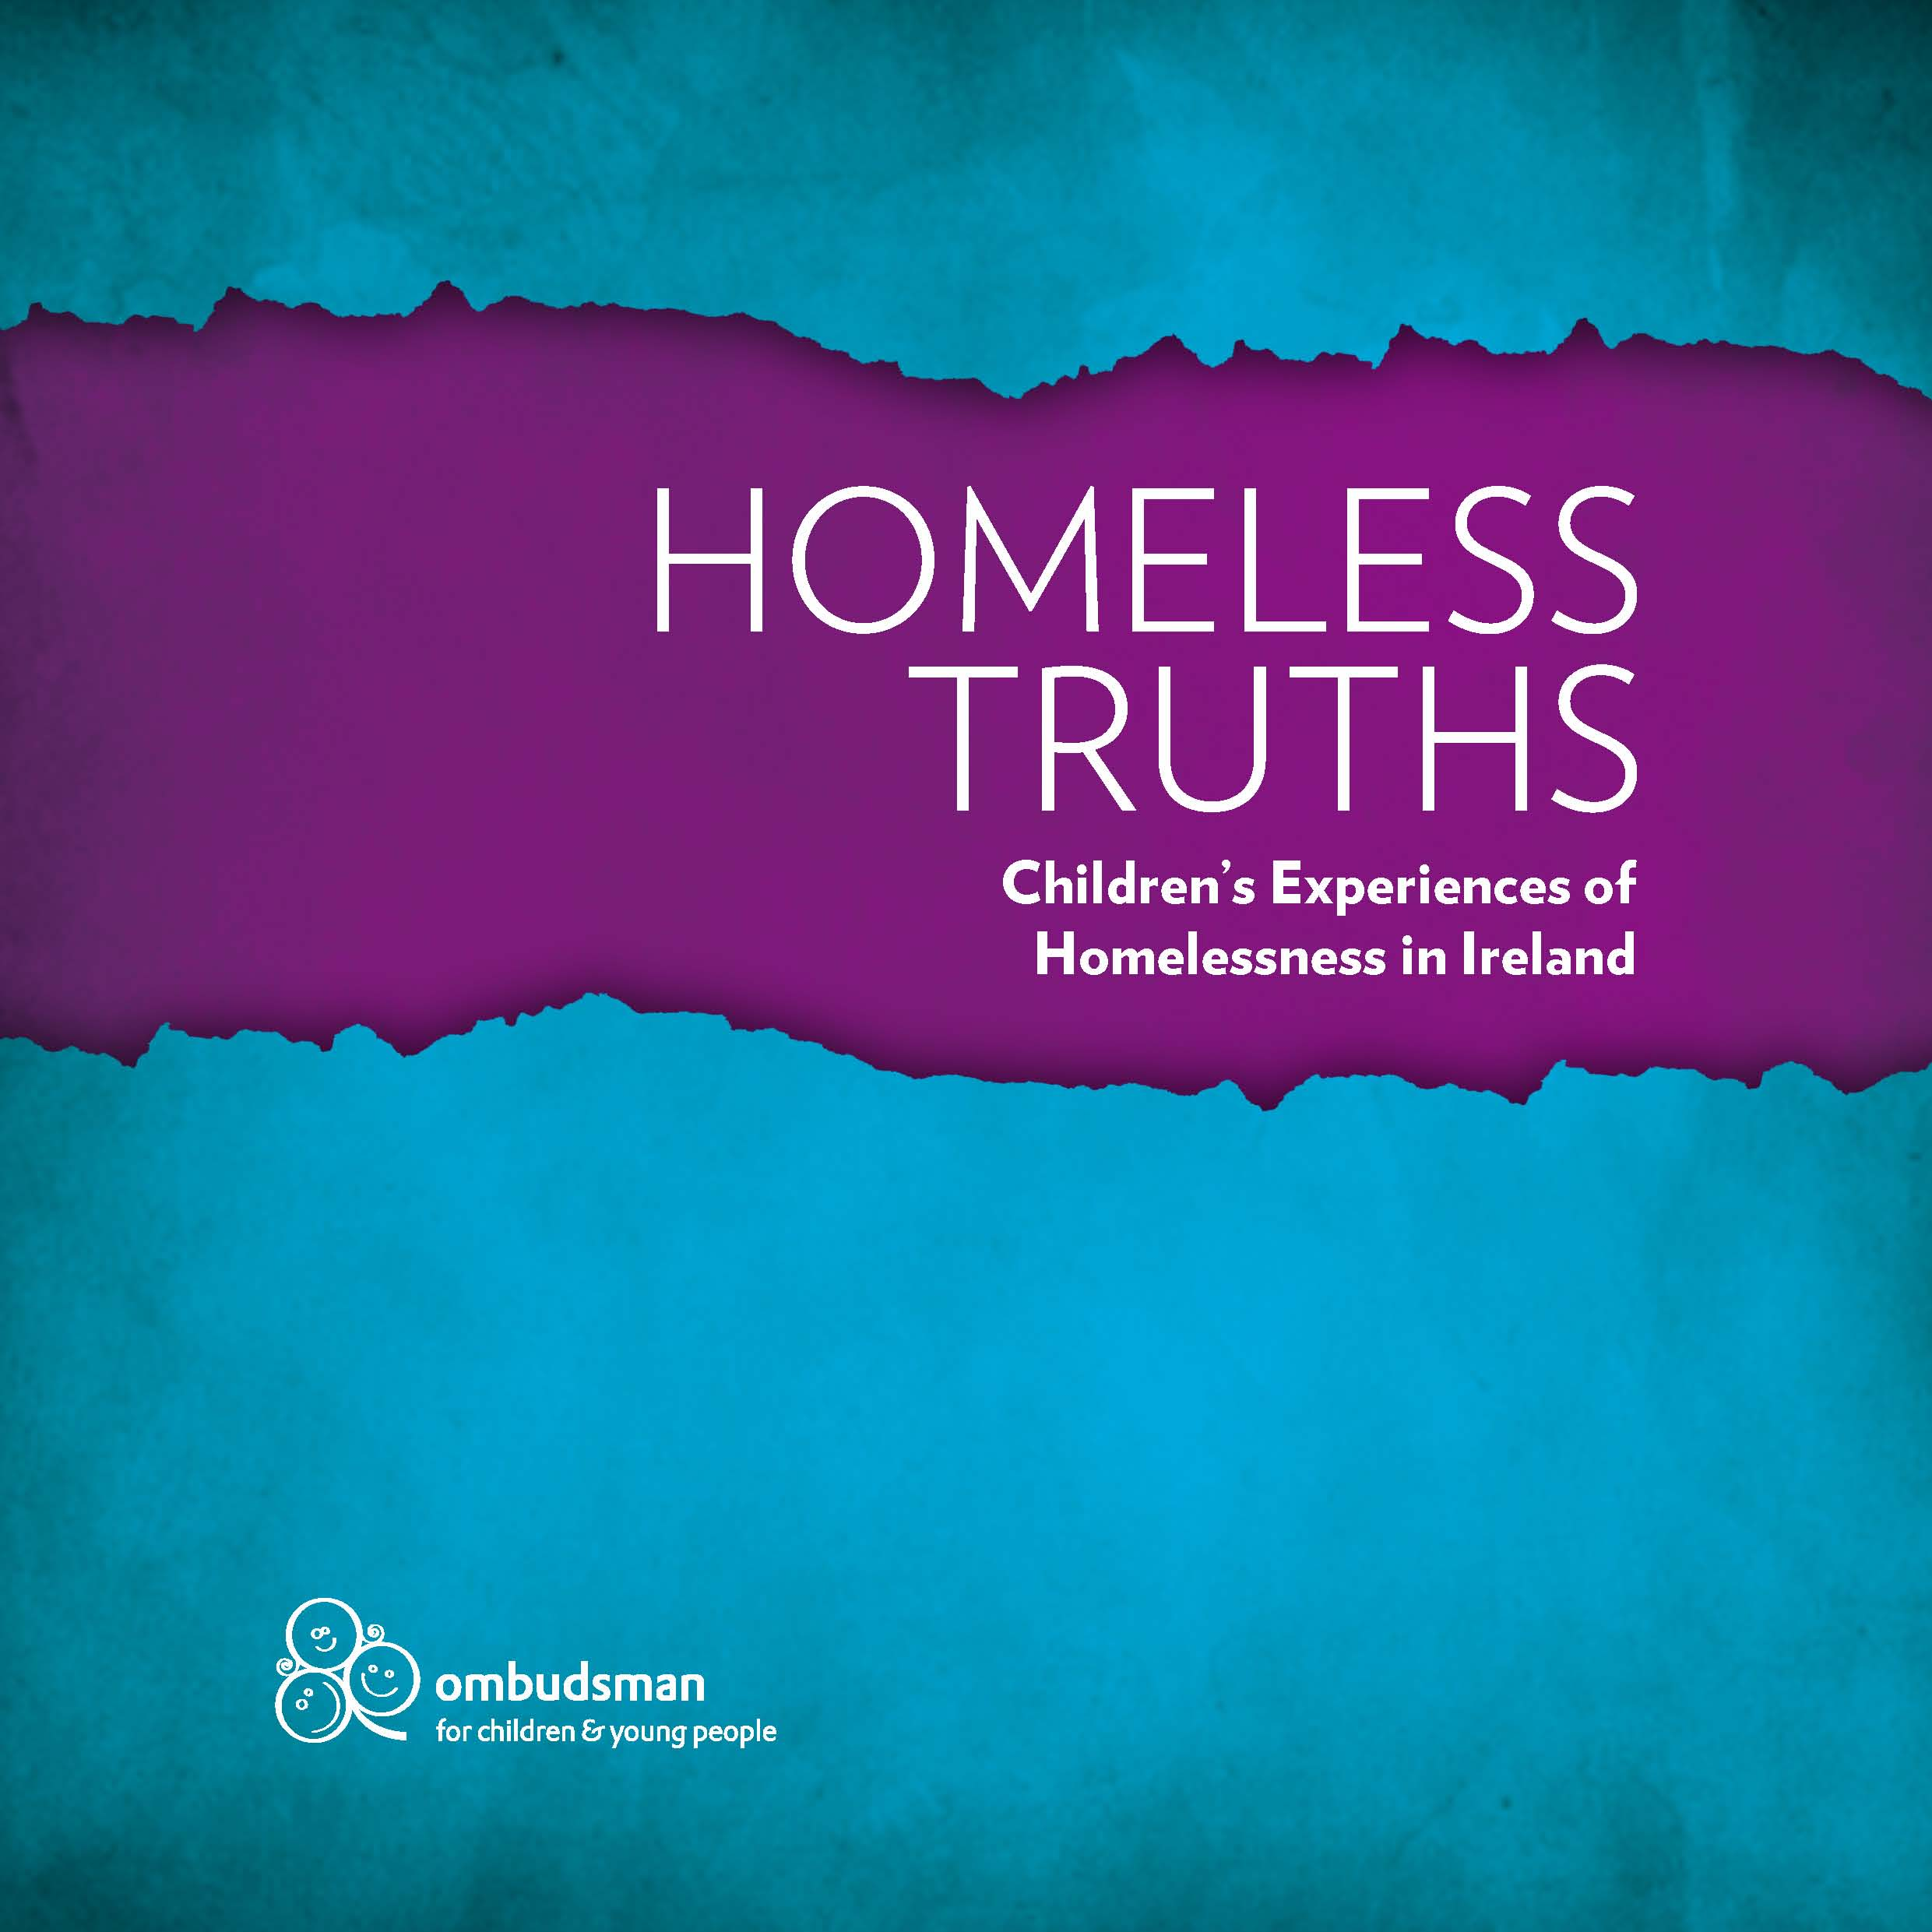 global homelessness essay Homelessness in america in a well-developed argument essay explain why this issue is a serious problem this assignment does.